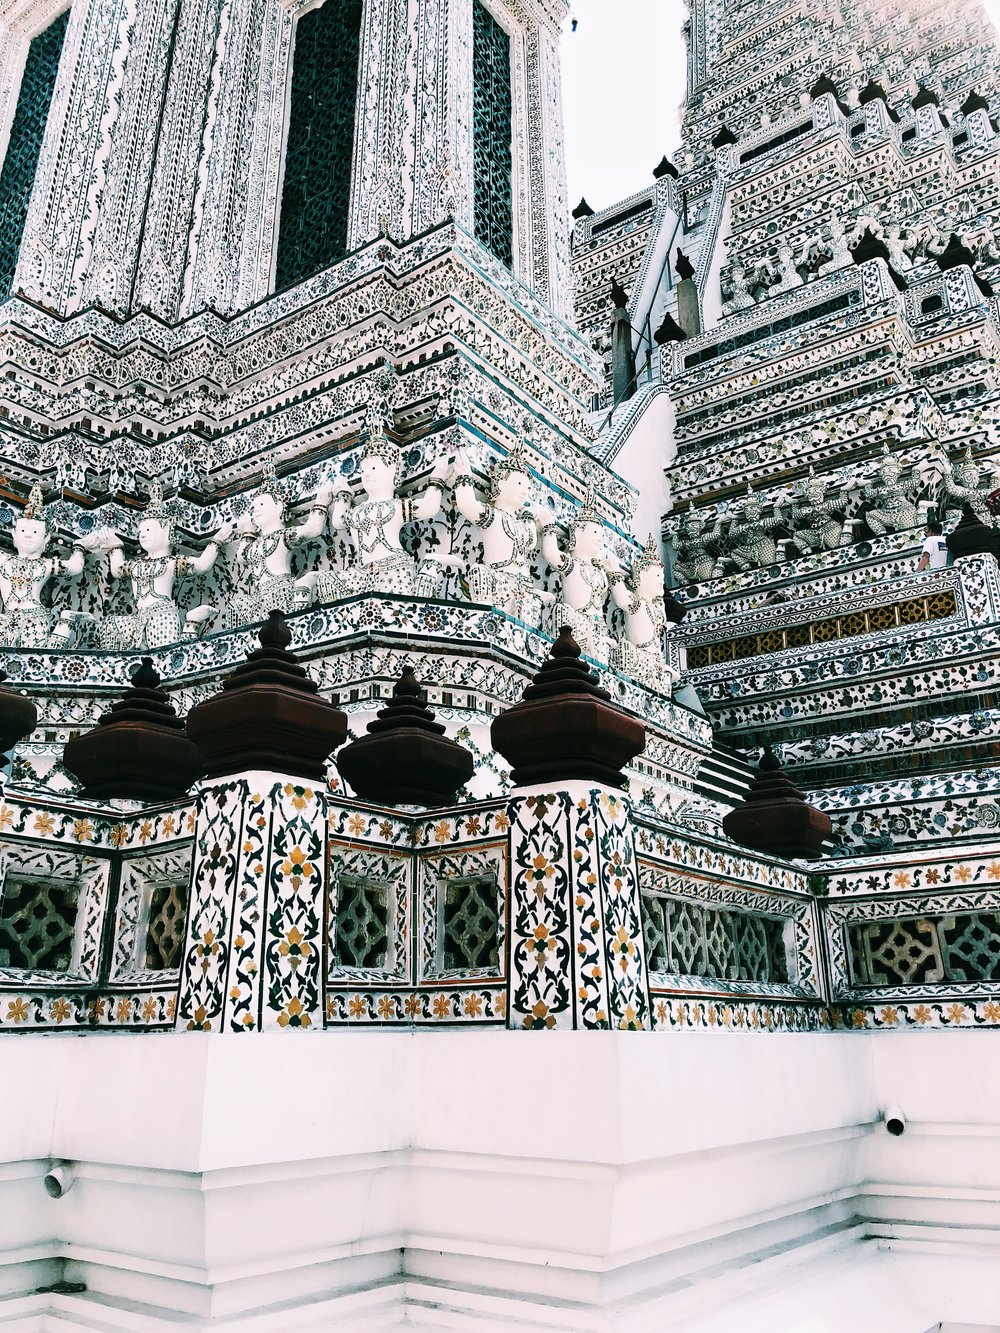 Many of the temples are decorated with broken pieces of mosaic. The Thai didn't want to waste the ceramic when they arrived broken from China, so they decided to repurpose them! I really admire their creativity & usefulness.